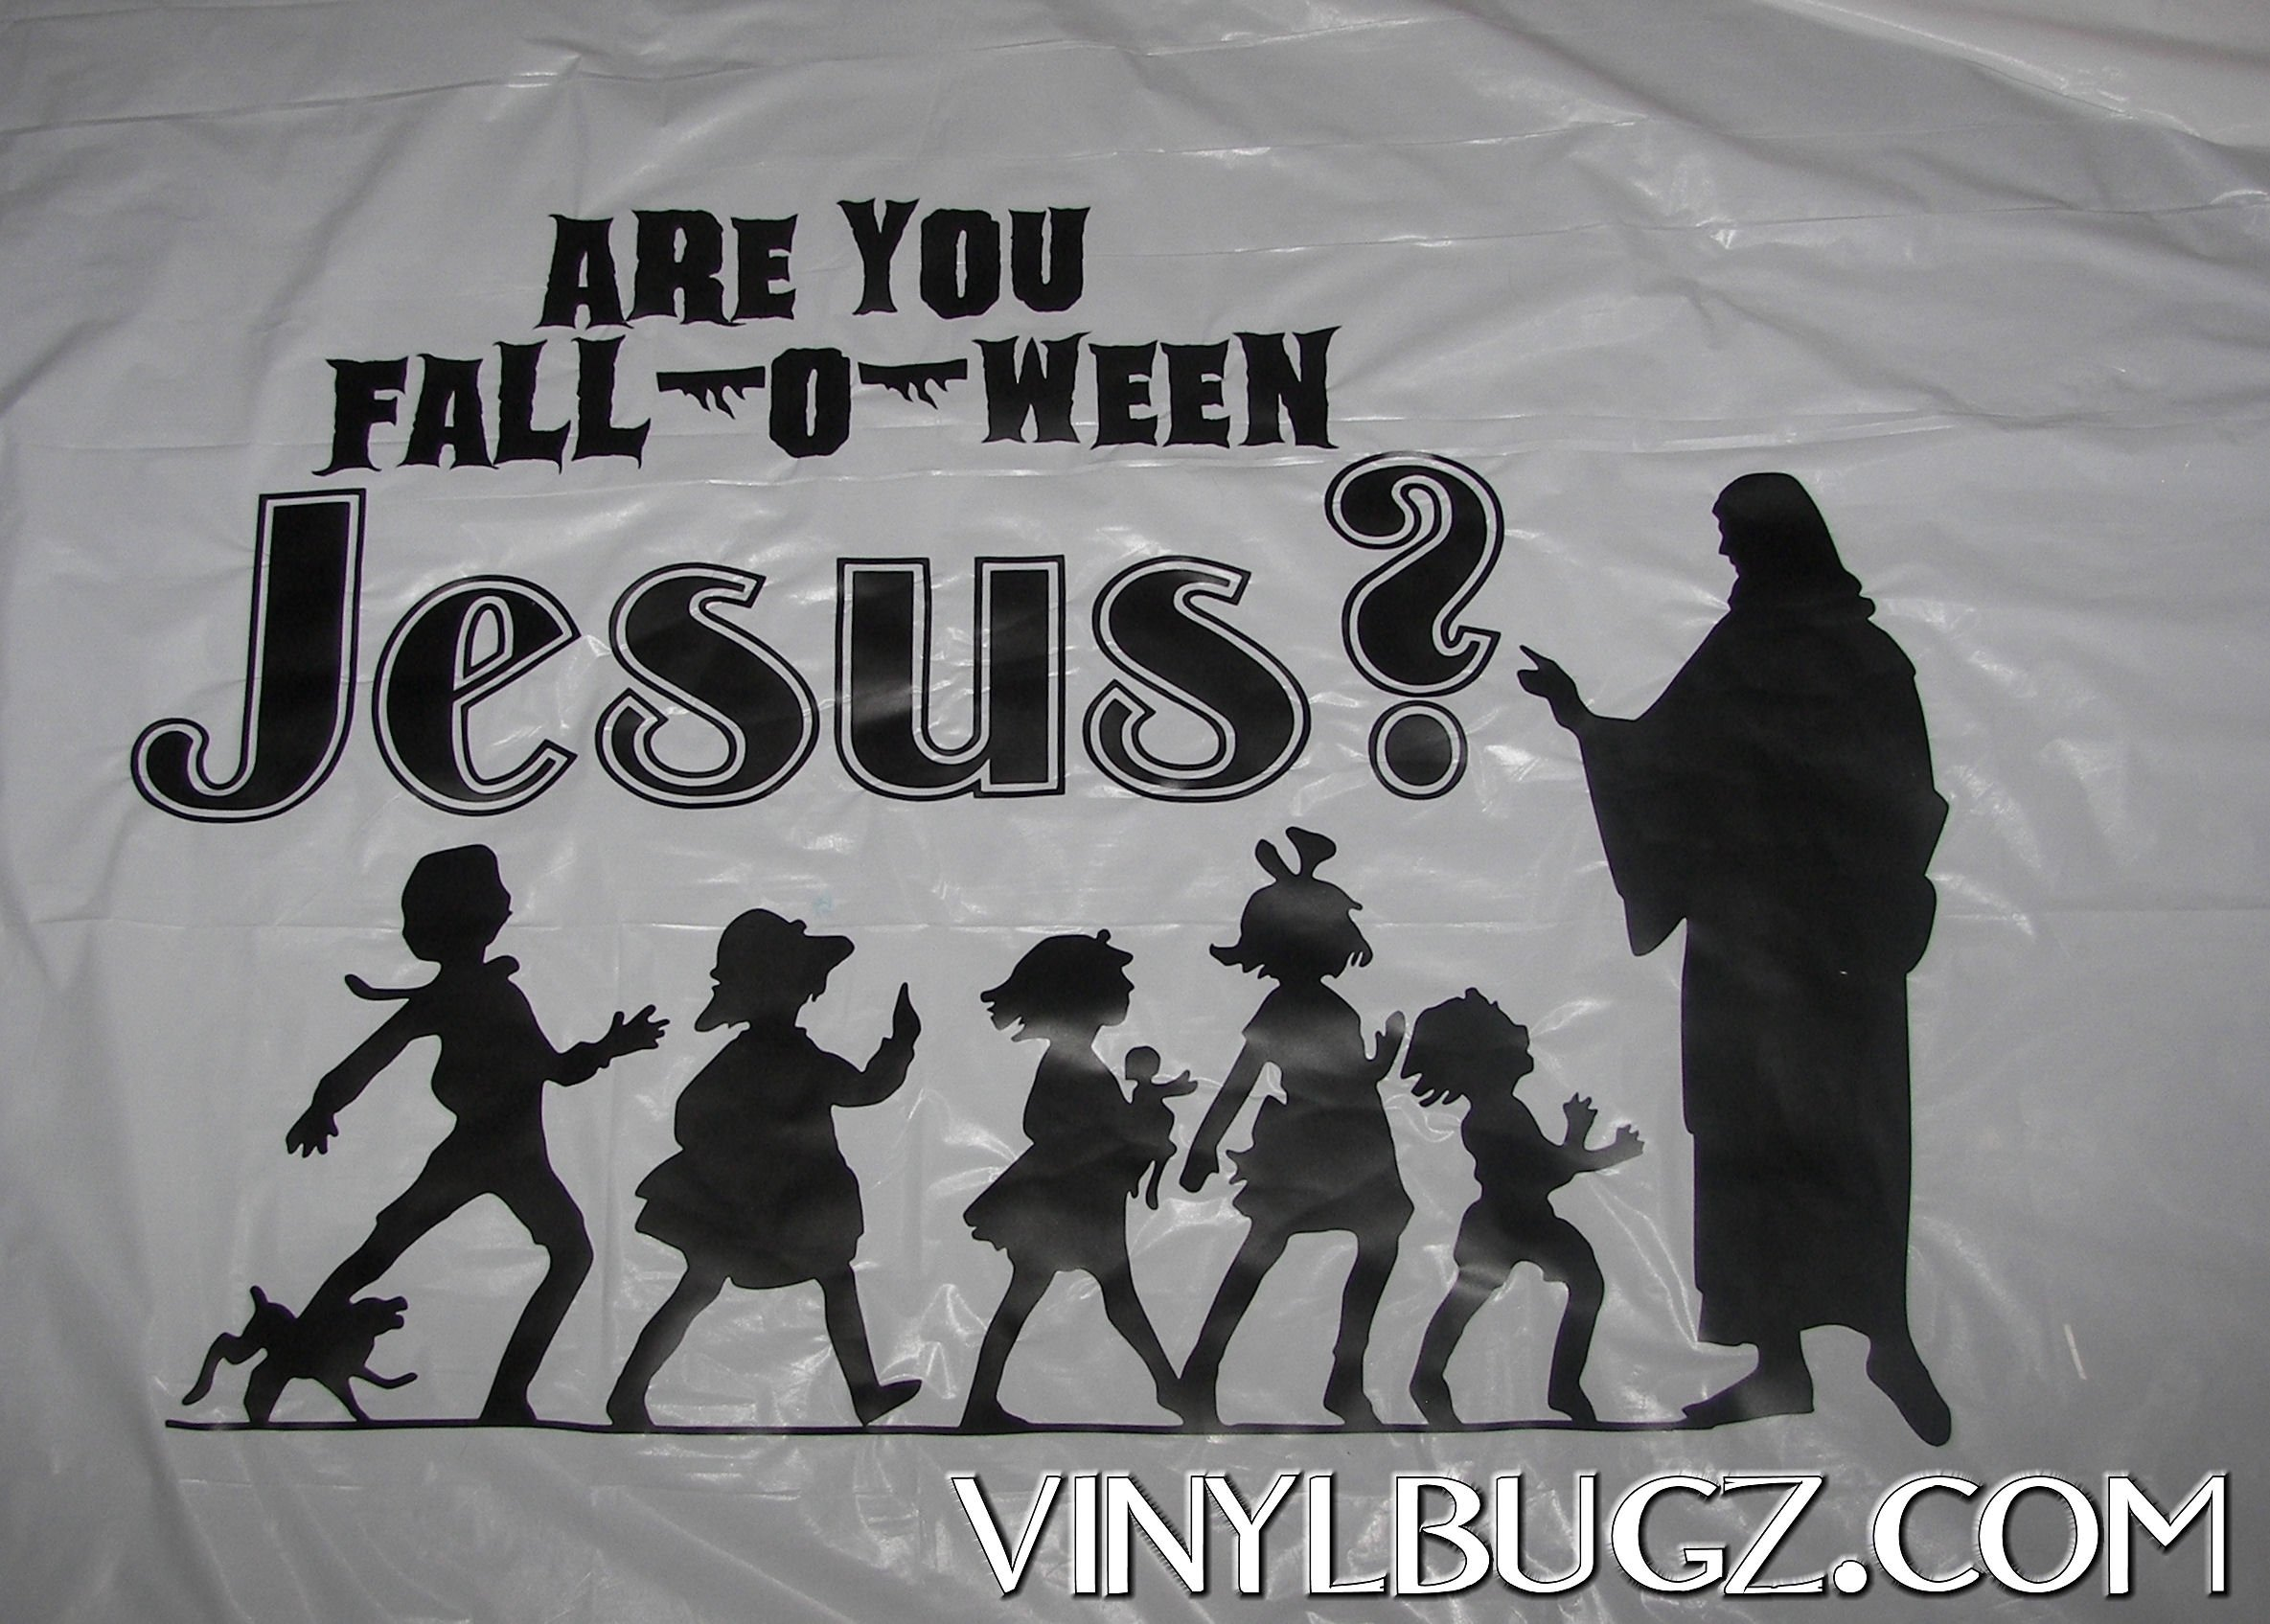 10 Unique Fall Festival Ideas For Church are you fall o ween jesus banner made for church trunk 0r treat